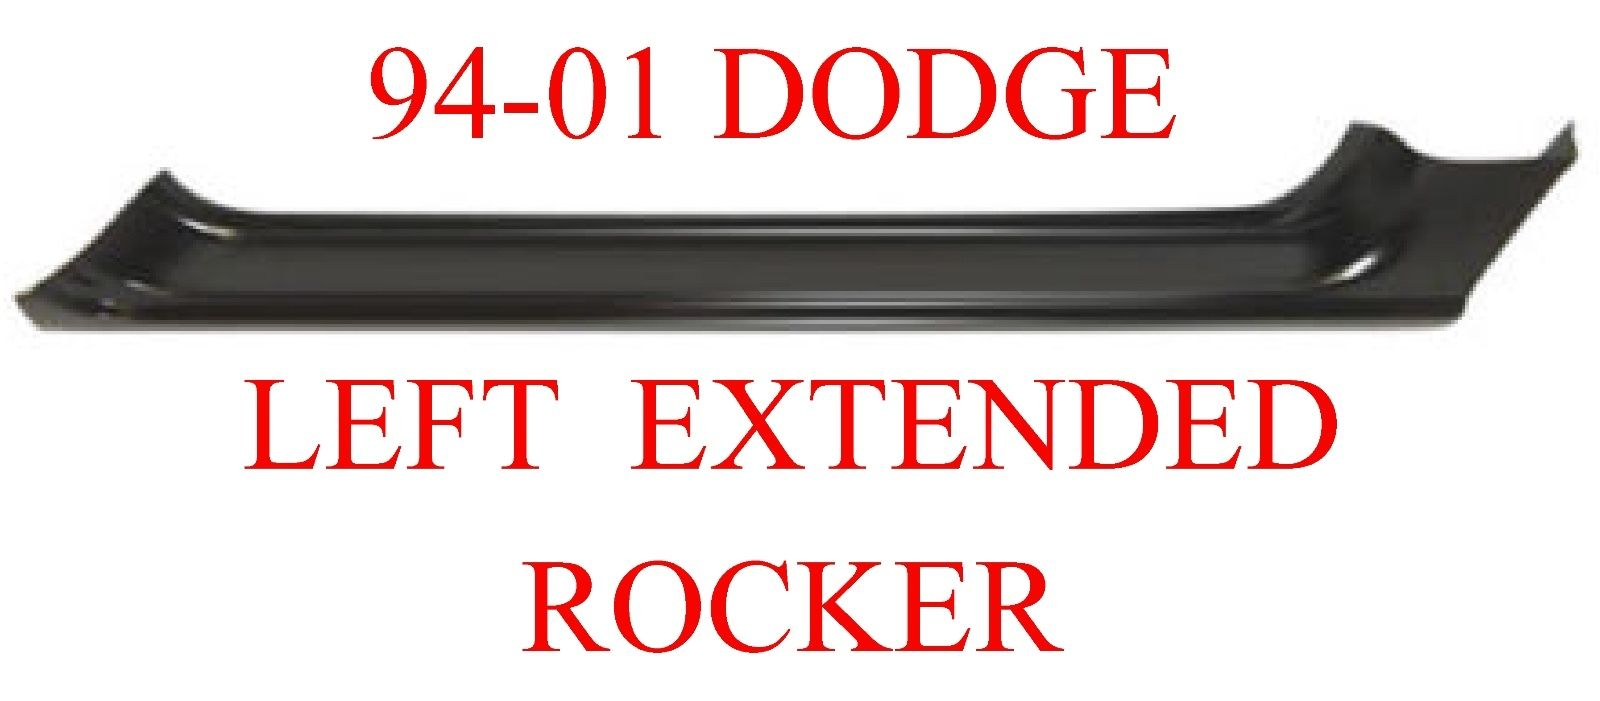 94-01 Dodge Ram Left Extended Rocker